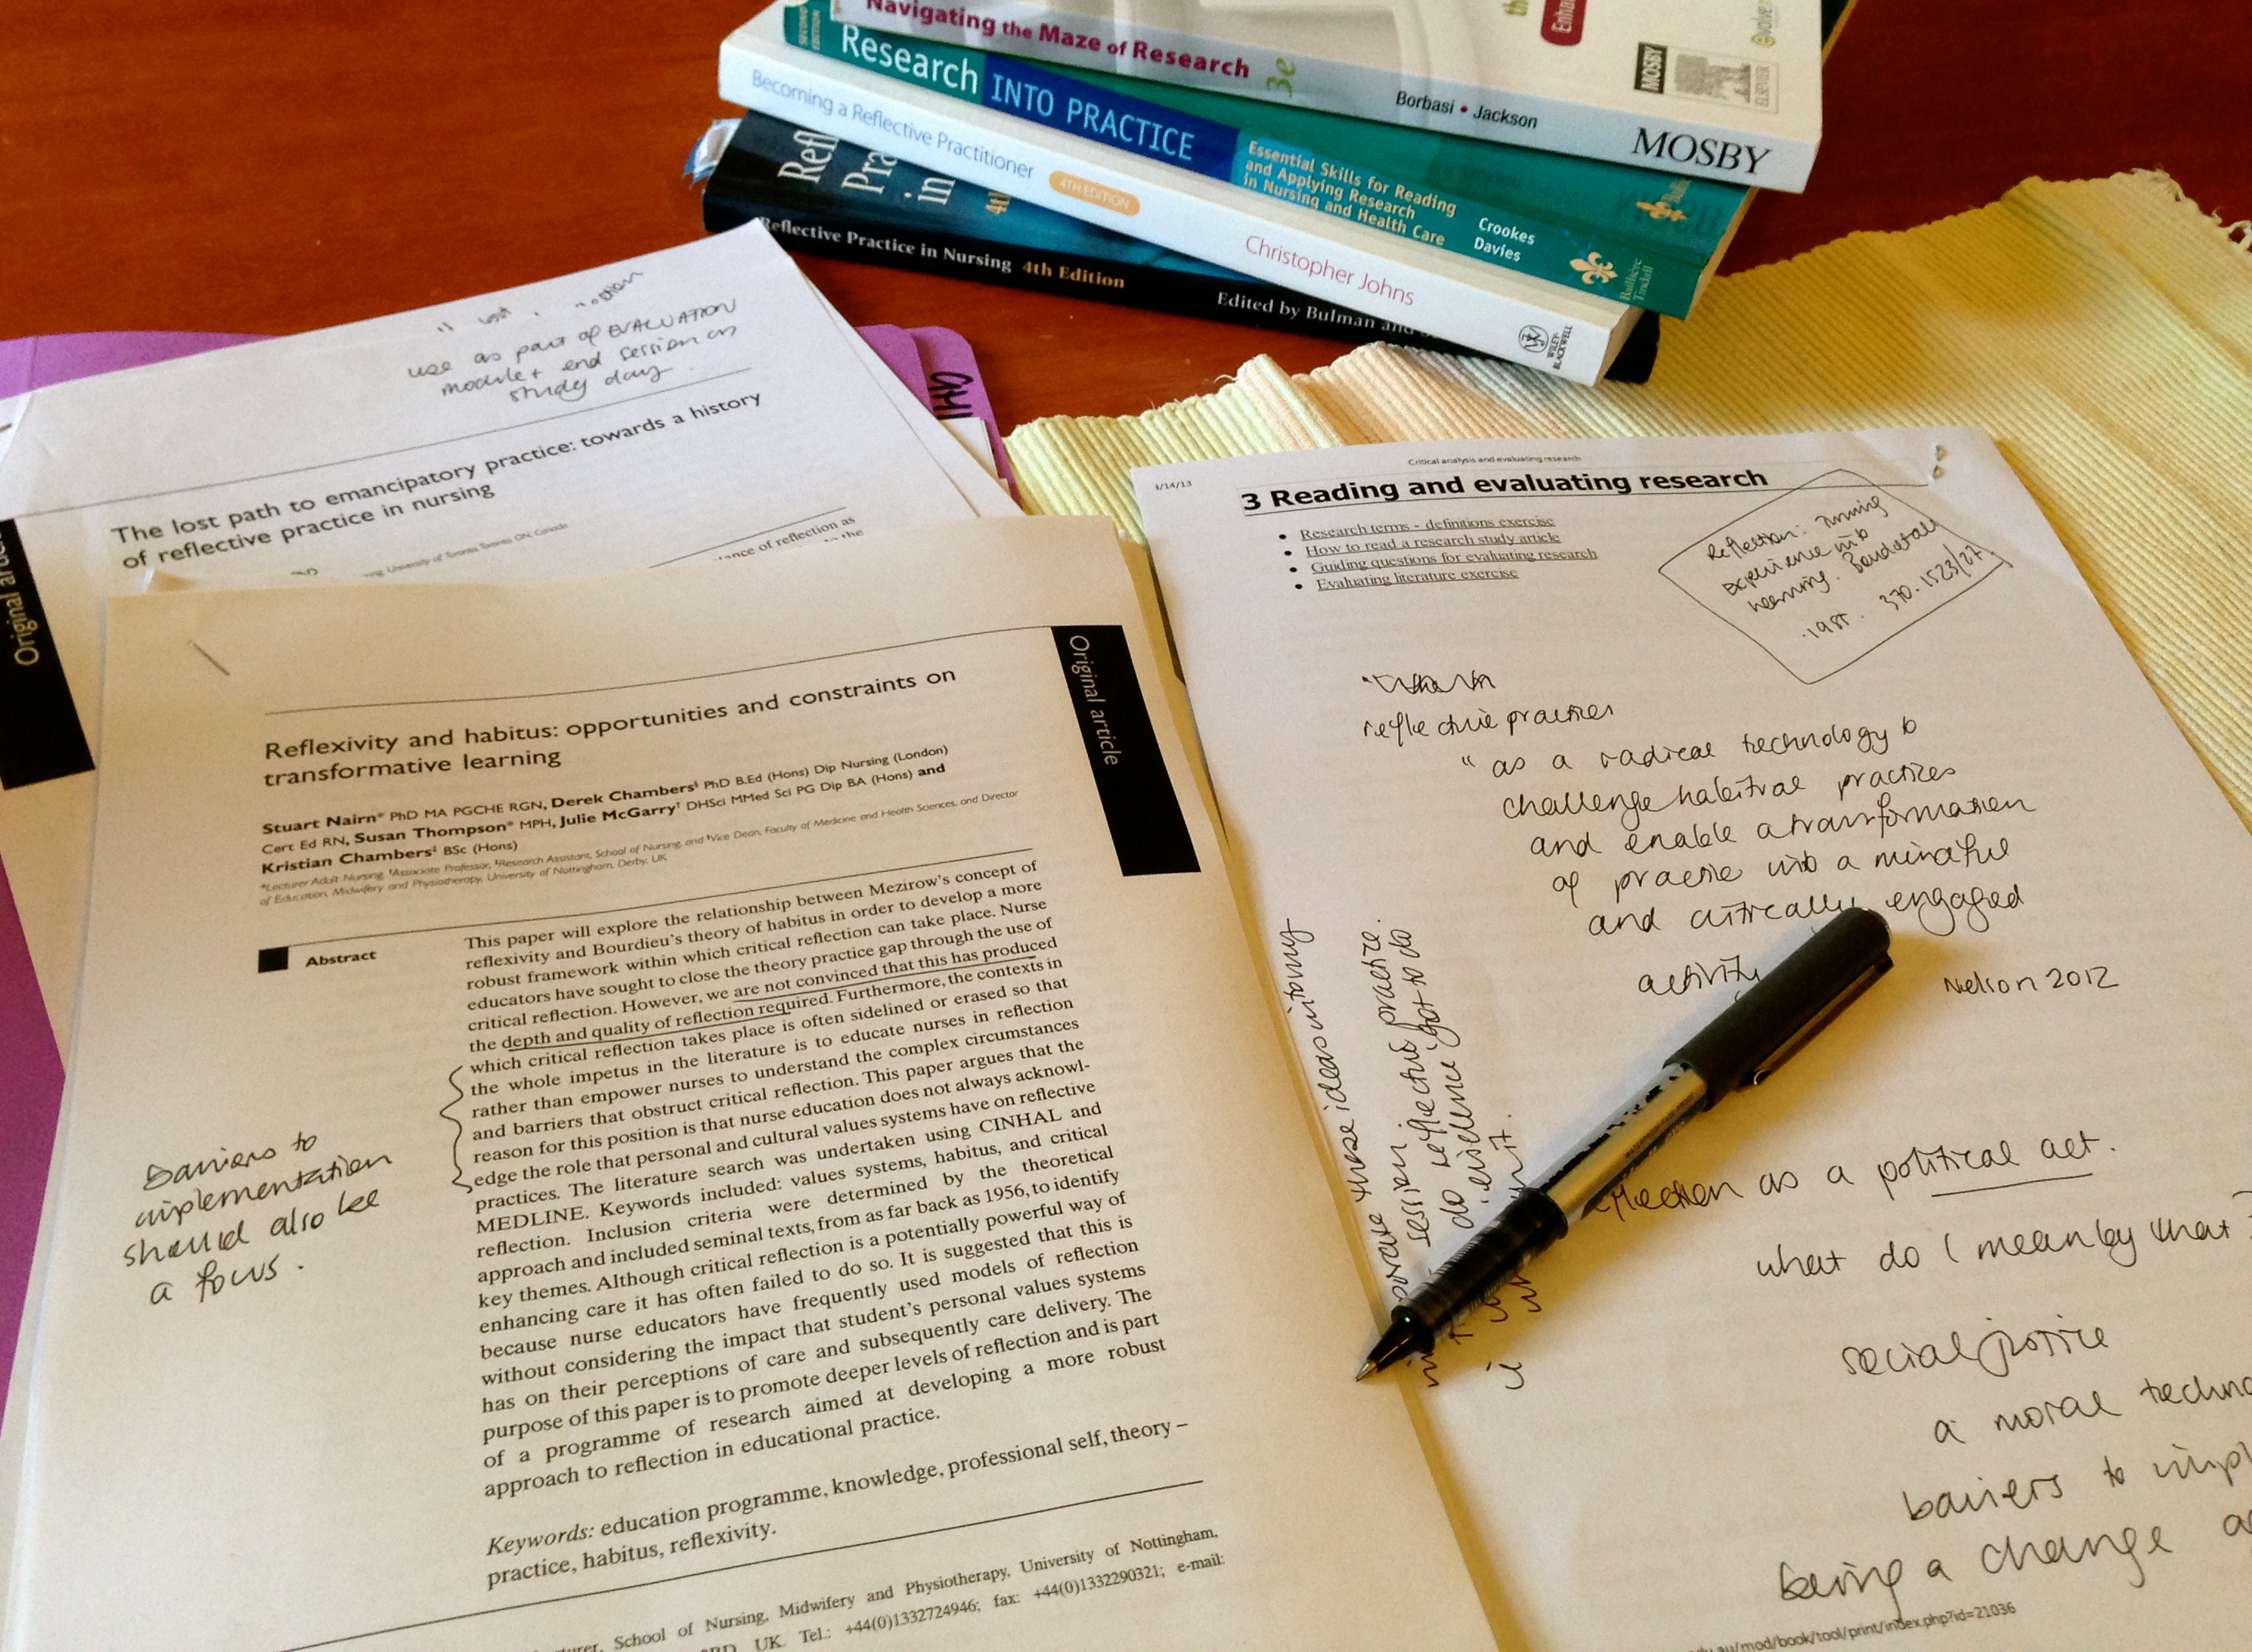 health policy reflection paper Introduction although theoretical preparation clearly is important, there is no substitute for the learning that takes place during clinical experiences.